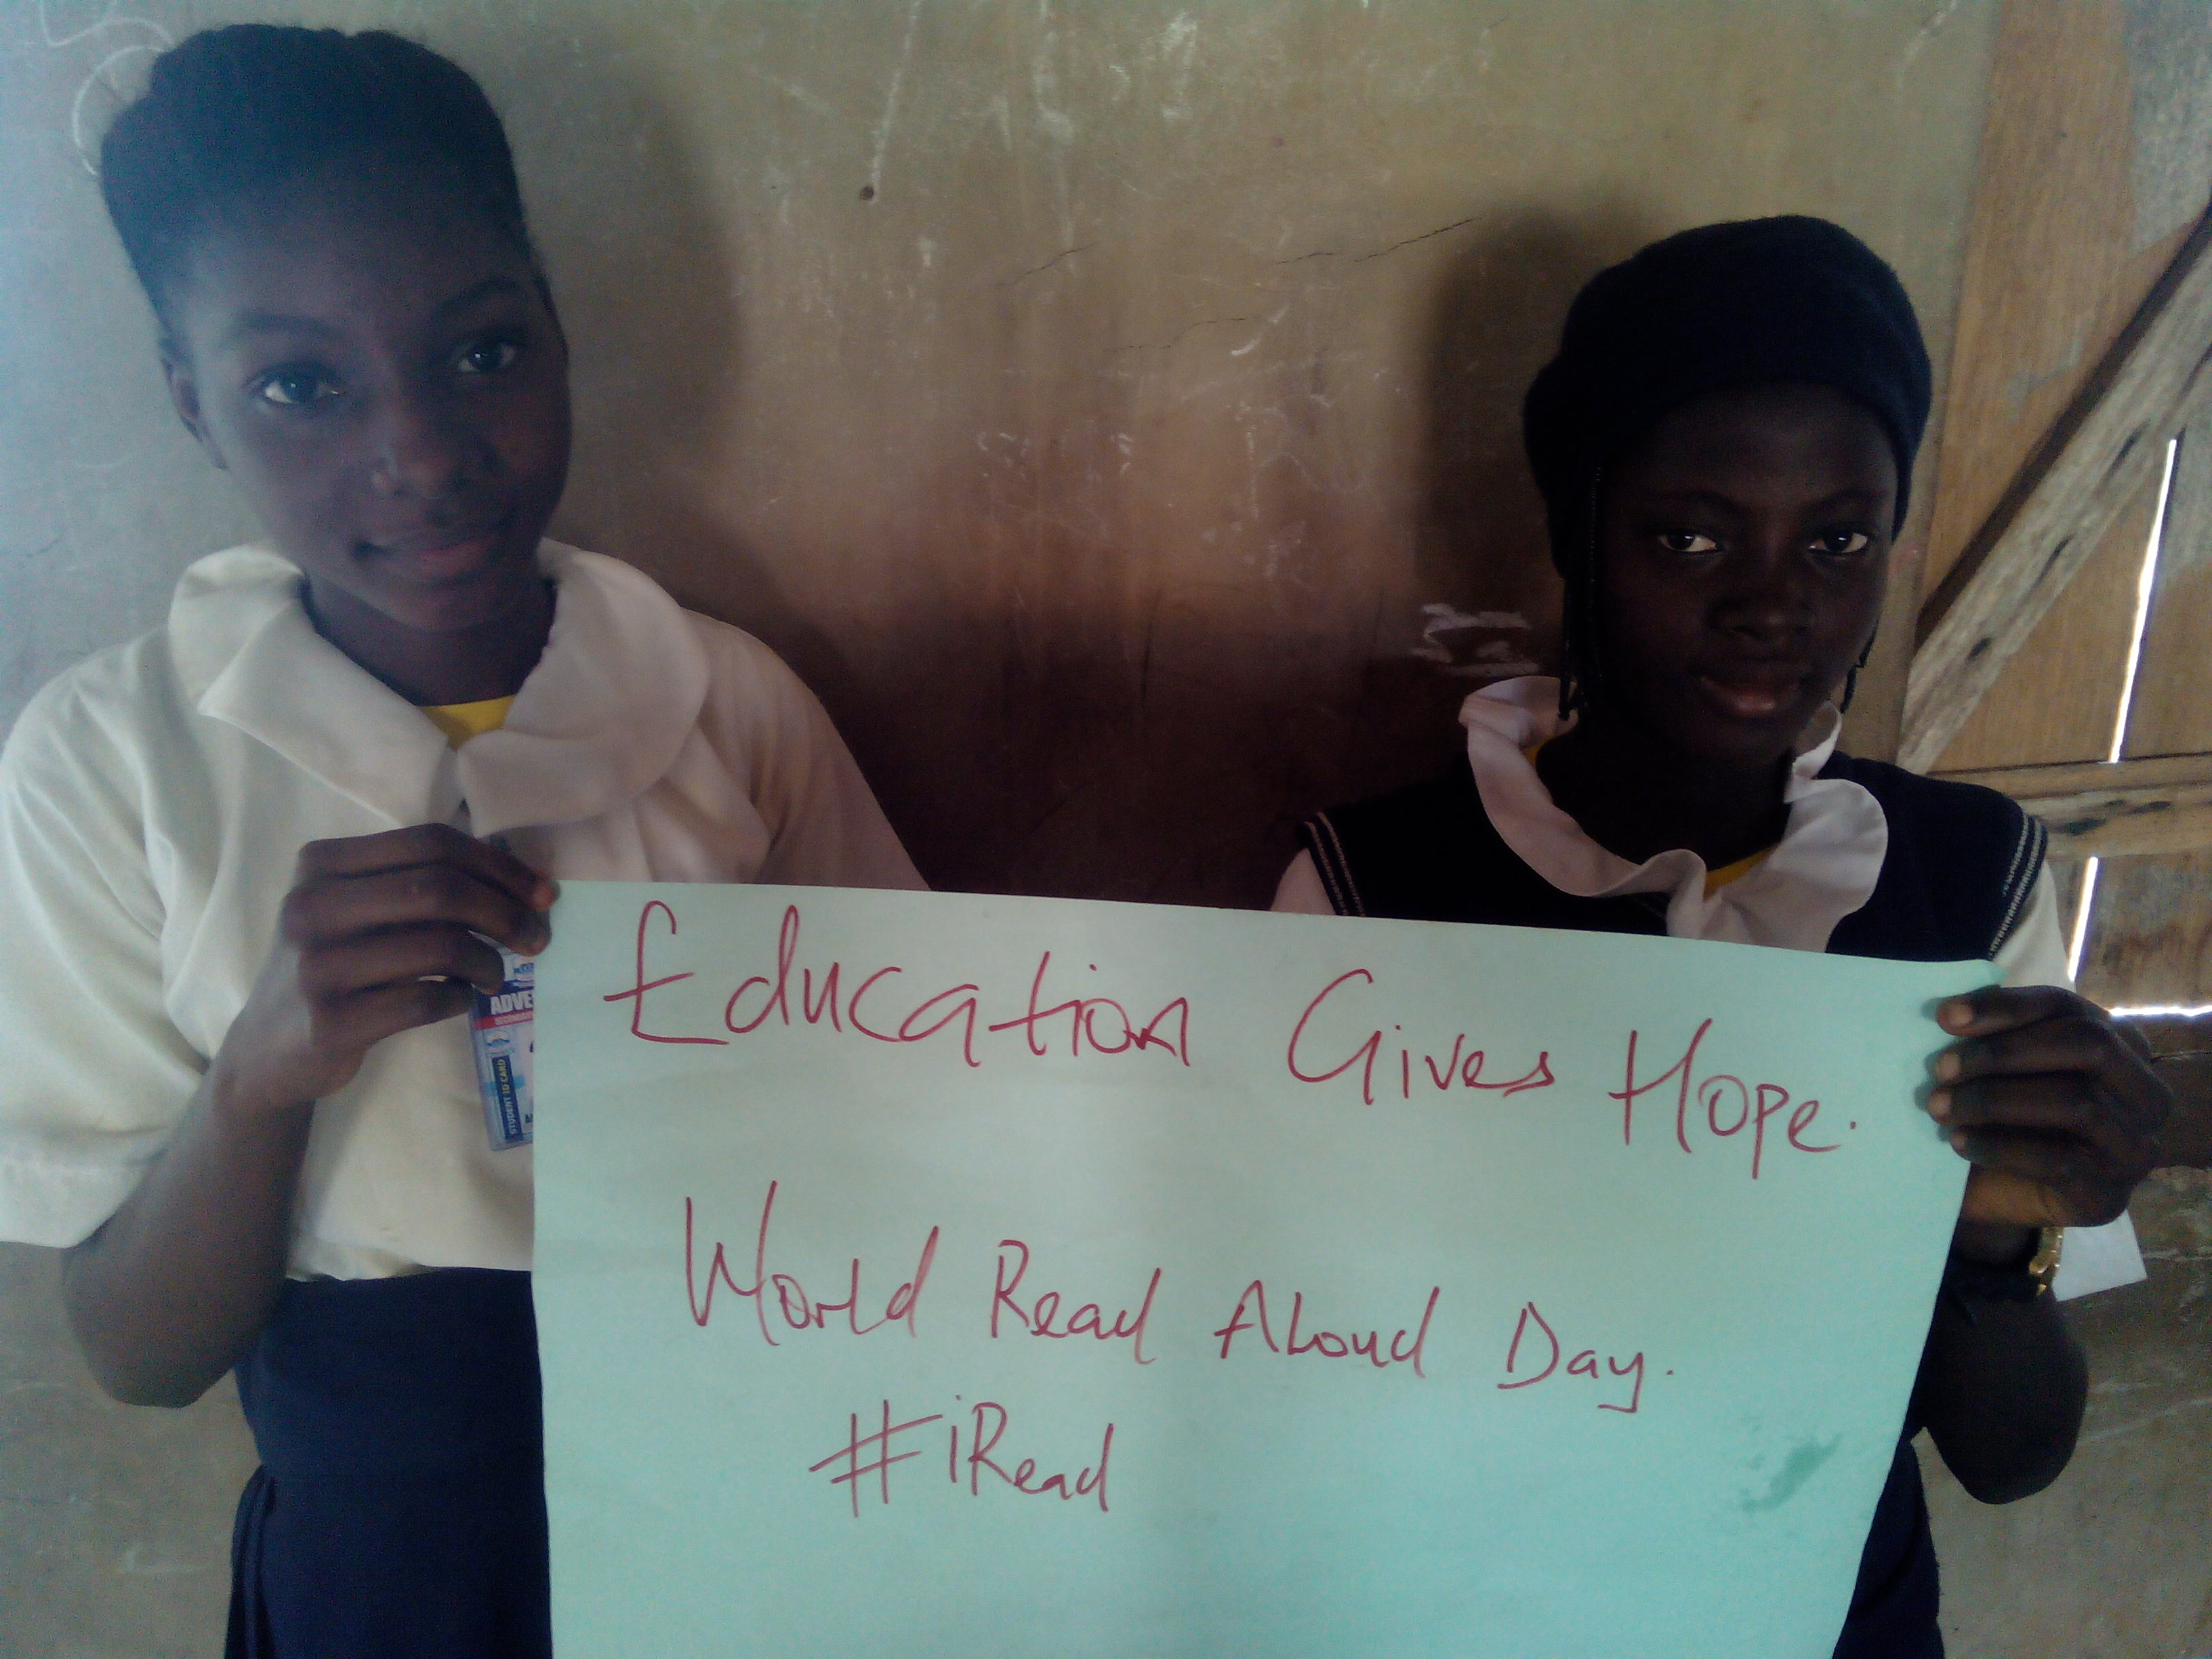 Ojumu Olalekan_ Aspire Book Club_worldread aloud day_changeforsociety_CFS_2